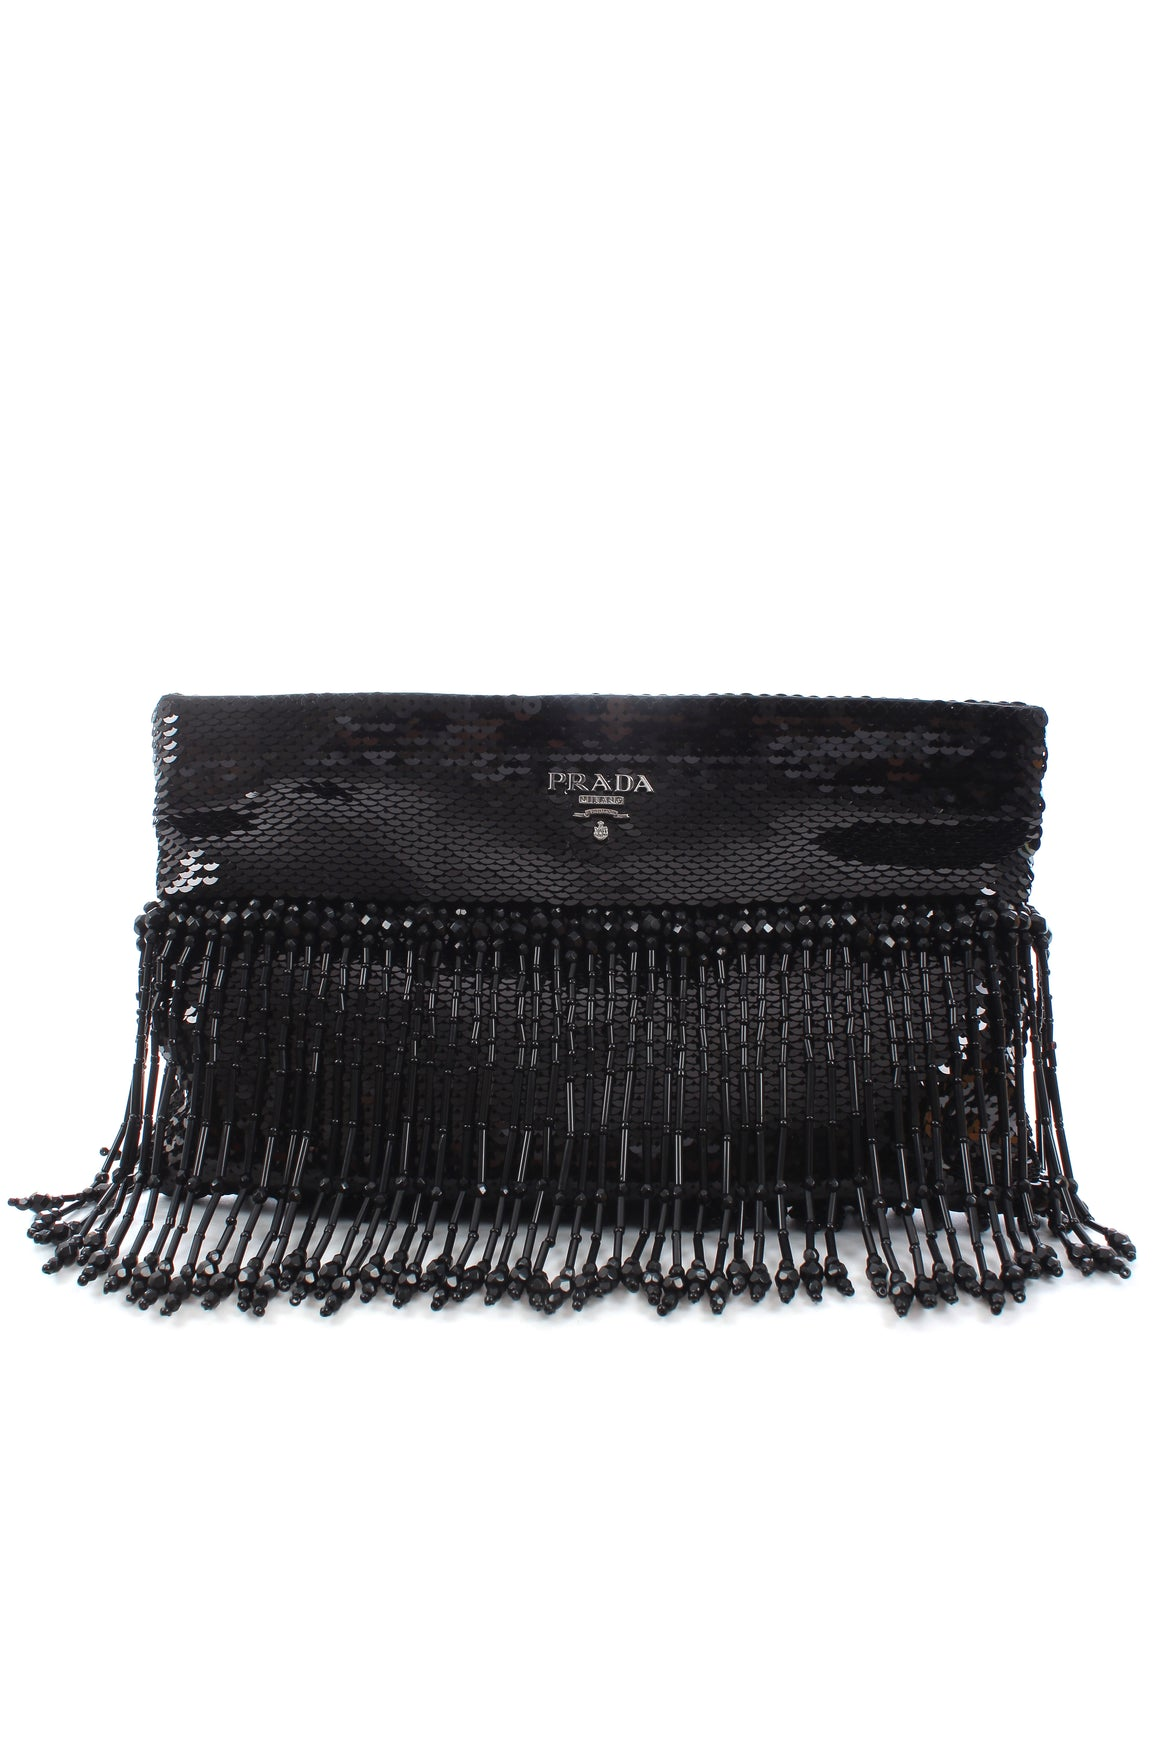 Prada Sequin-Embellished Beaded Fringe Clutch Bag